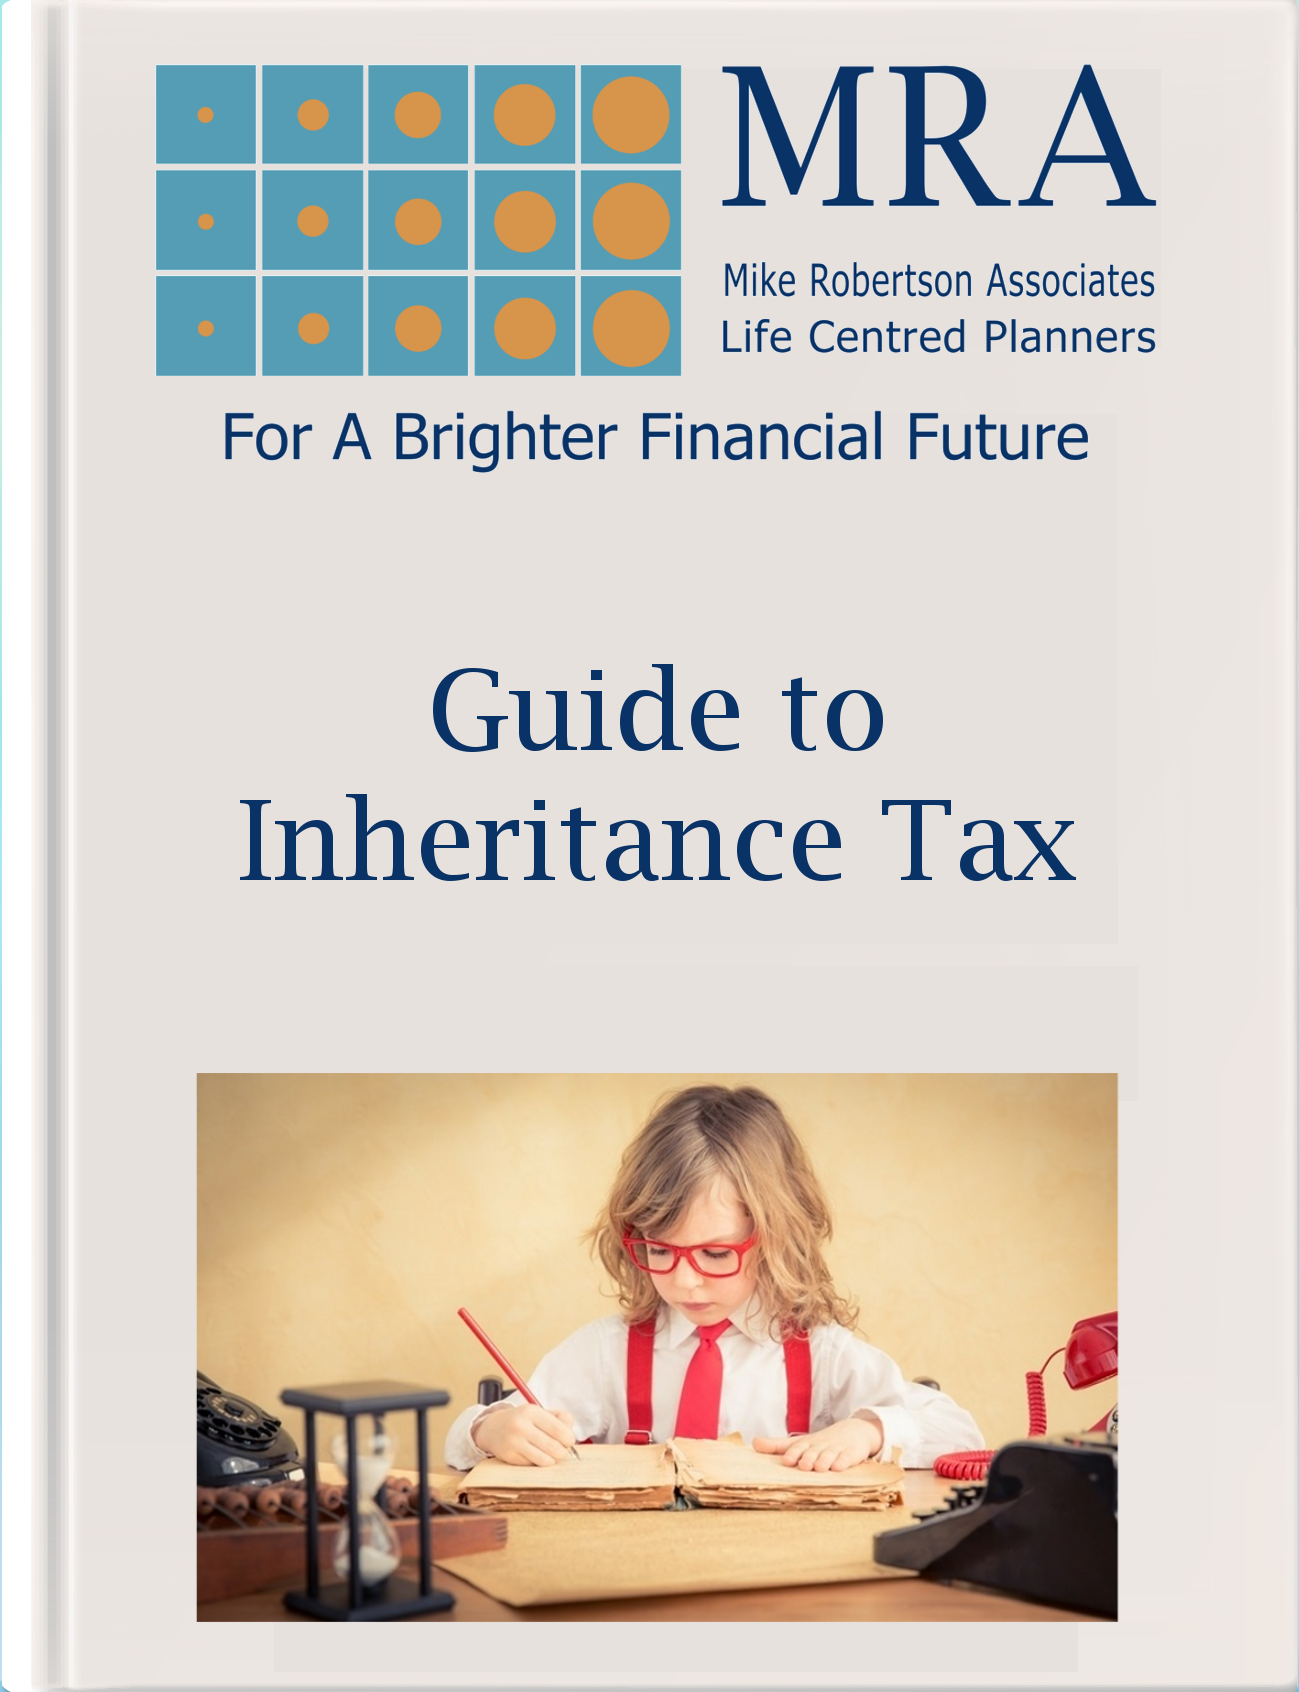 Download our Inheritance Tax Guide. Lifestyle Financial Planners, Lifestyle Financial Planning, Life Centred Financial Planning, Life Centred Financial Planners, Independent Financial Adviser, Independent Financial Advisor, IFA Local, Life Style Financial Consultant, Life Centred Financial Consultant, Personal Financial Planning, Financial Planning, Personal Financial Planning, Personal Finances, Financial Consultant, Pensions, Pensions Planner, Retirement Planning, Retirement Planner, Tax Planning, Tax Planning Consultant, Tax Planning Adviser, Tax Consultant, Tax Planning Advisor, Cash Flow Budgeting, Banking, Insurance, Term Assurance, Mortgage Consultant, Mortgage Adviser, Mortgage Advisor, Mortgages, Savings, Pesonal Savings, Investments, Estate Planning, Estate Planner, Later Life Planning, Wealth Management, Business Adviser, Business Consultant, Forecasting, Investments, Portfolio Planning, Financial Guidance, Financial Security, Family Protection, Critical Illness, Critical Illness Planning, Critical Illness Protection, Tax Efficient Savings, Tax Planning, Tax Efficient Investments, Saving For Long Term Goals, Savings For Long Term Care, Life Centred Financial Advice, Life Centred Adviser, Life Centred Advisor, Life Centered Planning, Life Centered Adviser, Cash Flow Forecasting, Residence Nil Rate Band, Land Registry, Tracing Land Registry Form, Financial Planning, Financial Planners, Work To Live Financial Planning, What is Inflation, How to beat Inflation, Selling a property in a limited company, SSAS Pensions, SSAS Pension, What is a SSAS, What is a SIPP, SIPP Planning, SSAS Planner, SIPP Planner, SSAS Planning, Stakeholder Pansions, Financial Freedom Reviews, When Can I Draw My State Pension, Saving Money, Ways To Save Money, Ways To Save money on a Tight Budget, Land Registry, What is An Annuity, Annuities, Lower My Bills, Nil Rate Band, Inheritance Tax Advice, Essential Corporate Solutions, Inheritance Tax Residence Nil Rate Band, Debt Relief Order, Life Planning, Financial Advice East Sussex, Mike Robertson, Split The Bills, The Residence Nil Rate Band, The Best Saving Schemes, What is a Venture Capital Trust, What Is A VCT, What Is A EIS, What Is An Enterprise Investment Scheme, Is A Financial Planner Important, What Can a Financial Planner do for me, Do I need Financial Planning, Do I need Financial Planning, Do I need a Financial Planner, Do You Need a Financial Adviser, Eight Steps to choosing a Financial Adviser, Getting Financial Advice, Need Financial Planning, Why Do You need a Financial Adviser, What is A Financial Adviser, Pensions Advice